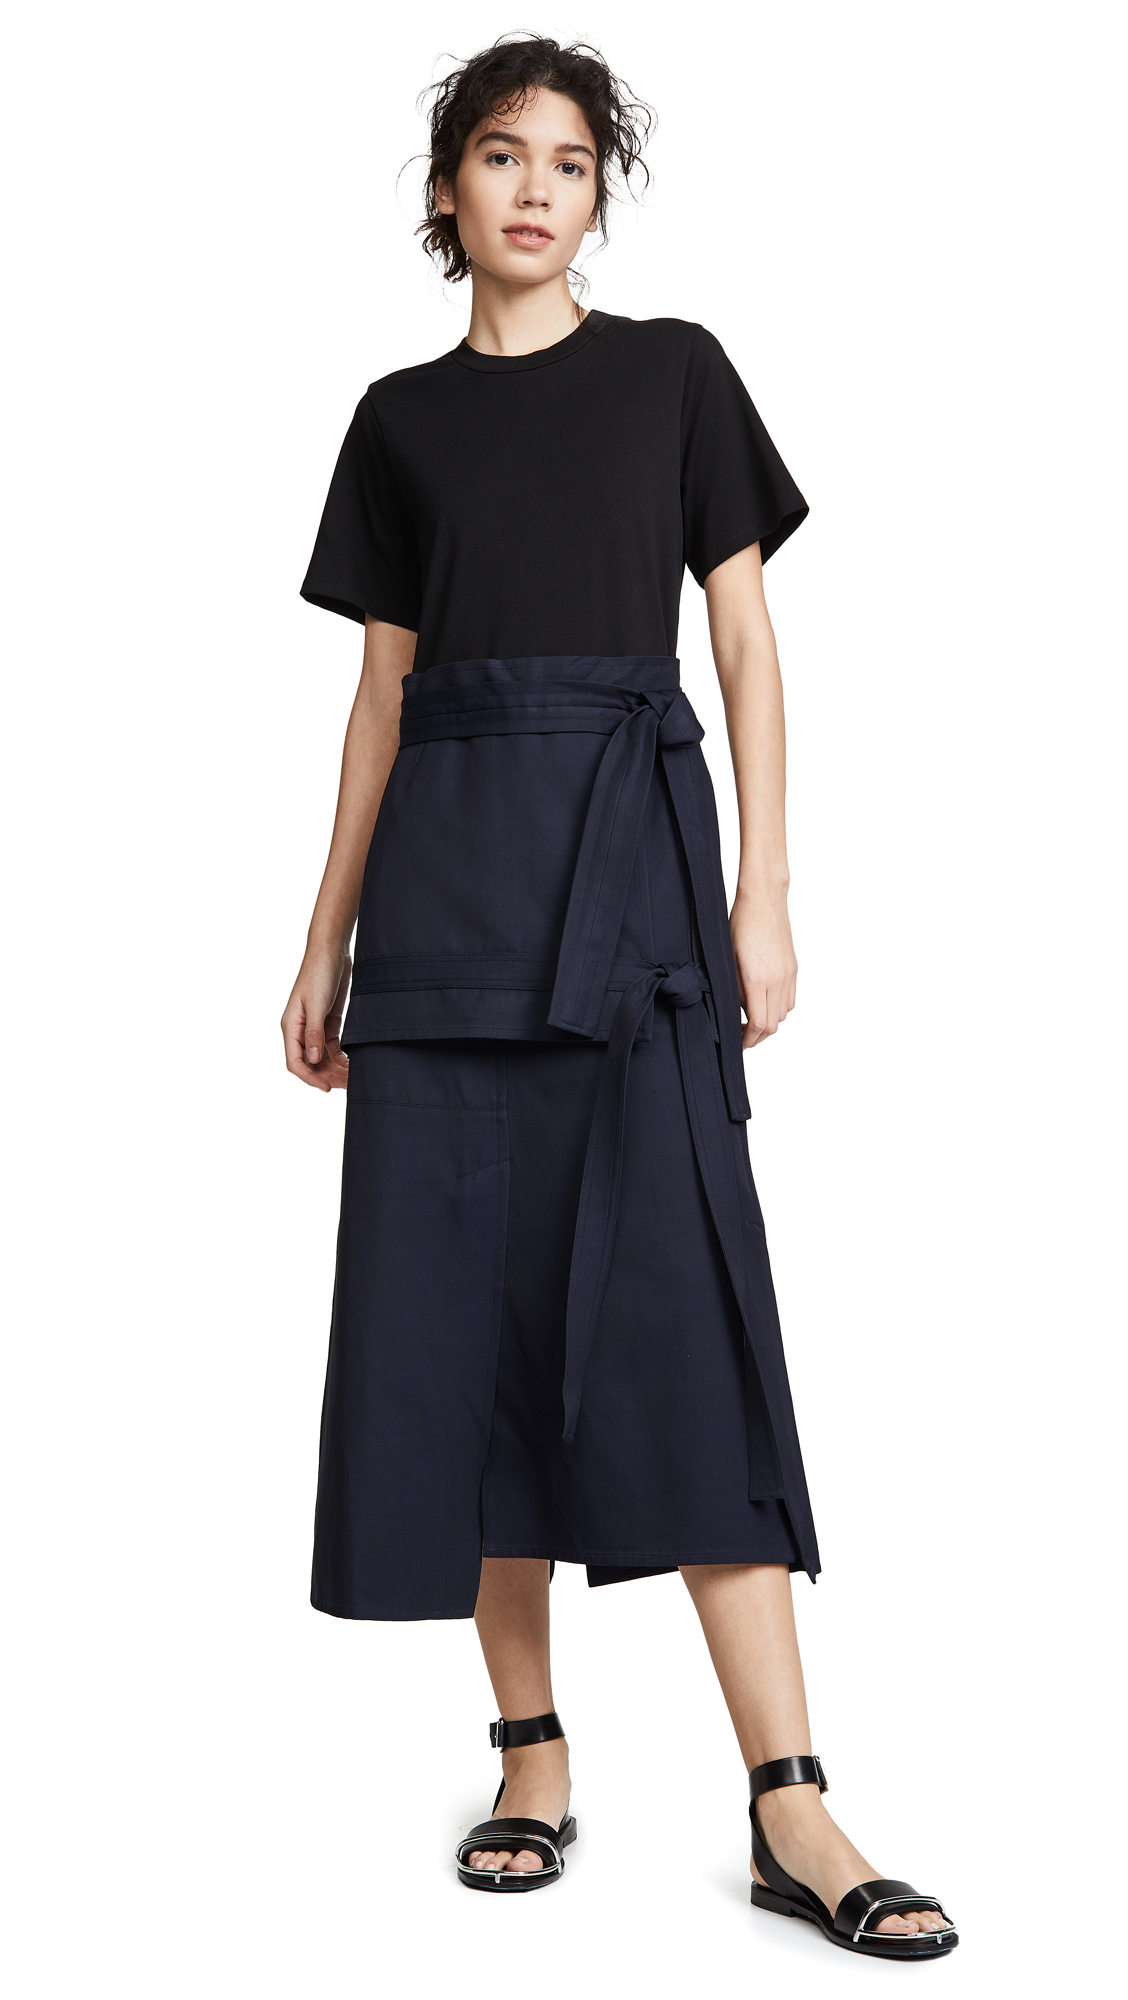 3.1 Phillip Lim Front Tie Dress - Midnight